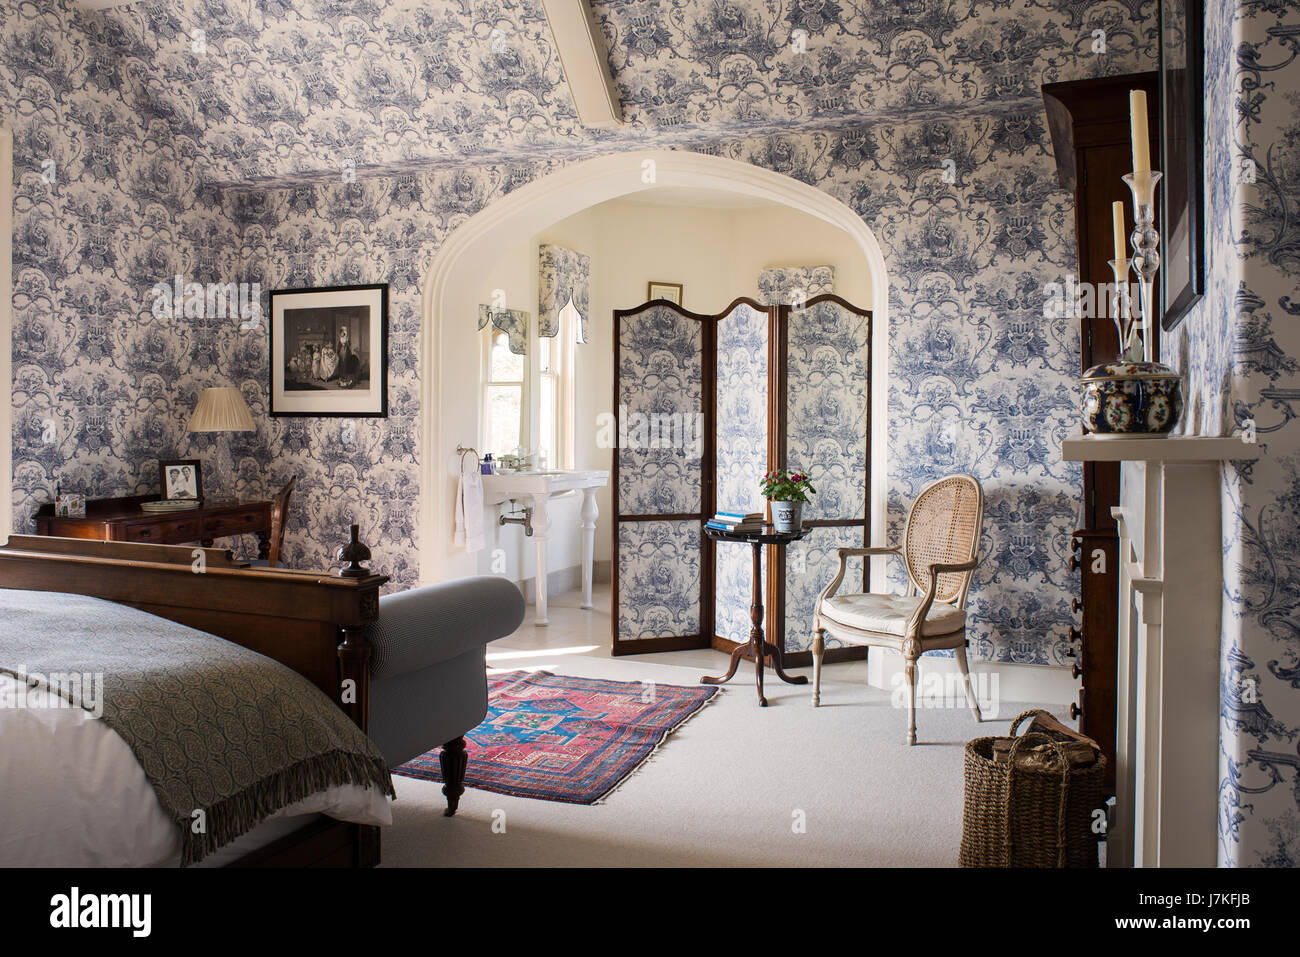 Large ensuite bedroom with toile de jouy wallpaper and matching folding screen. Stock Photo